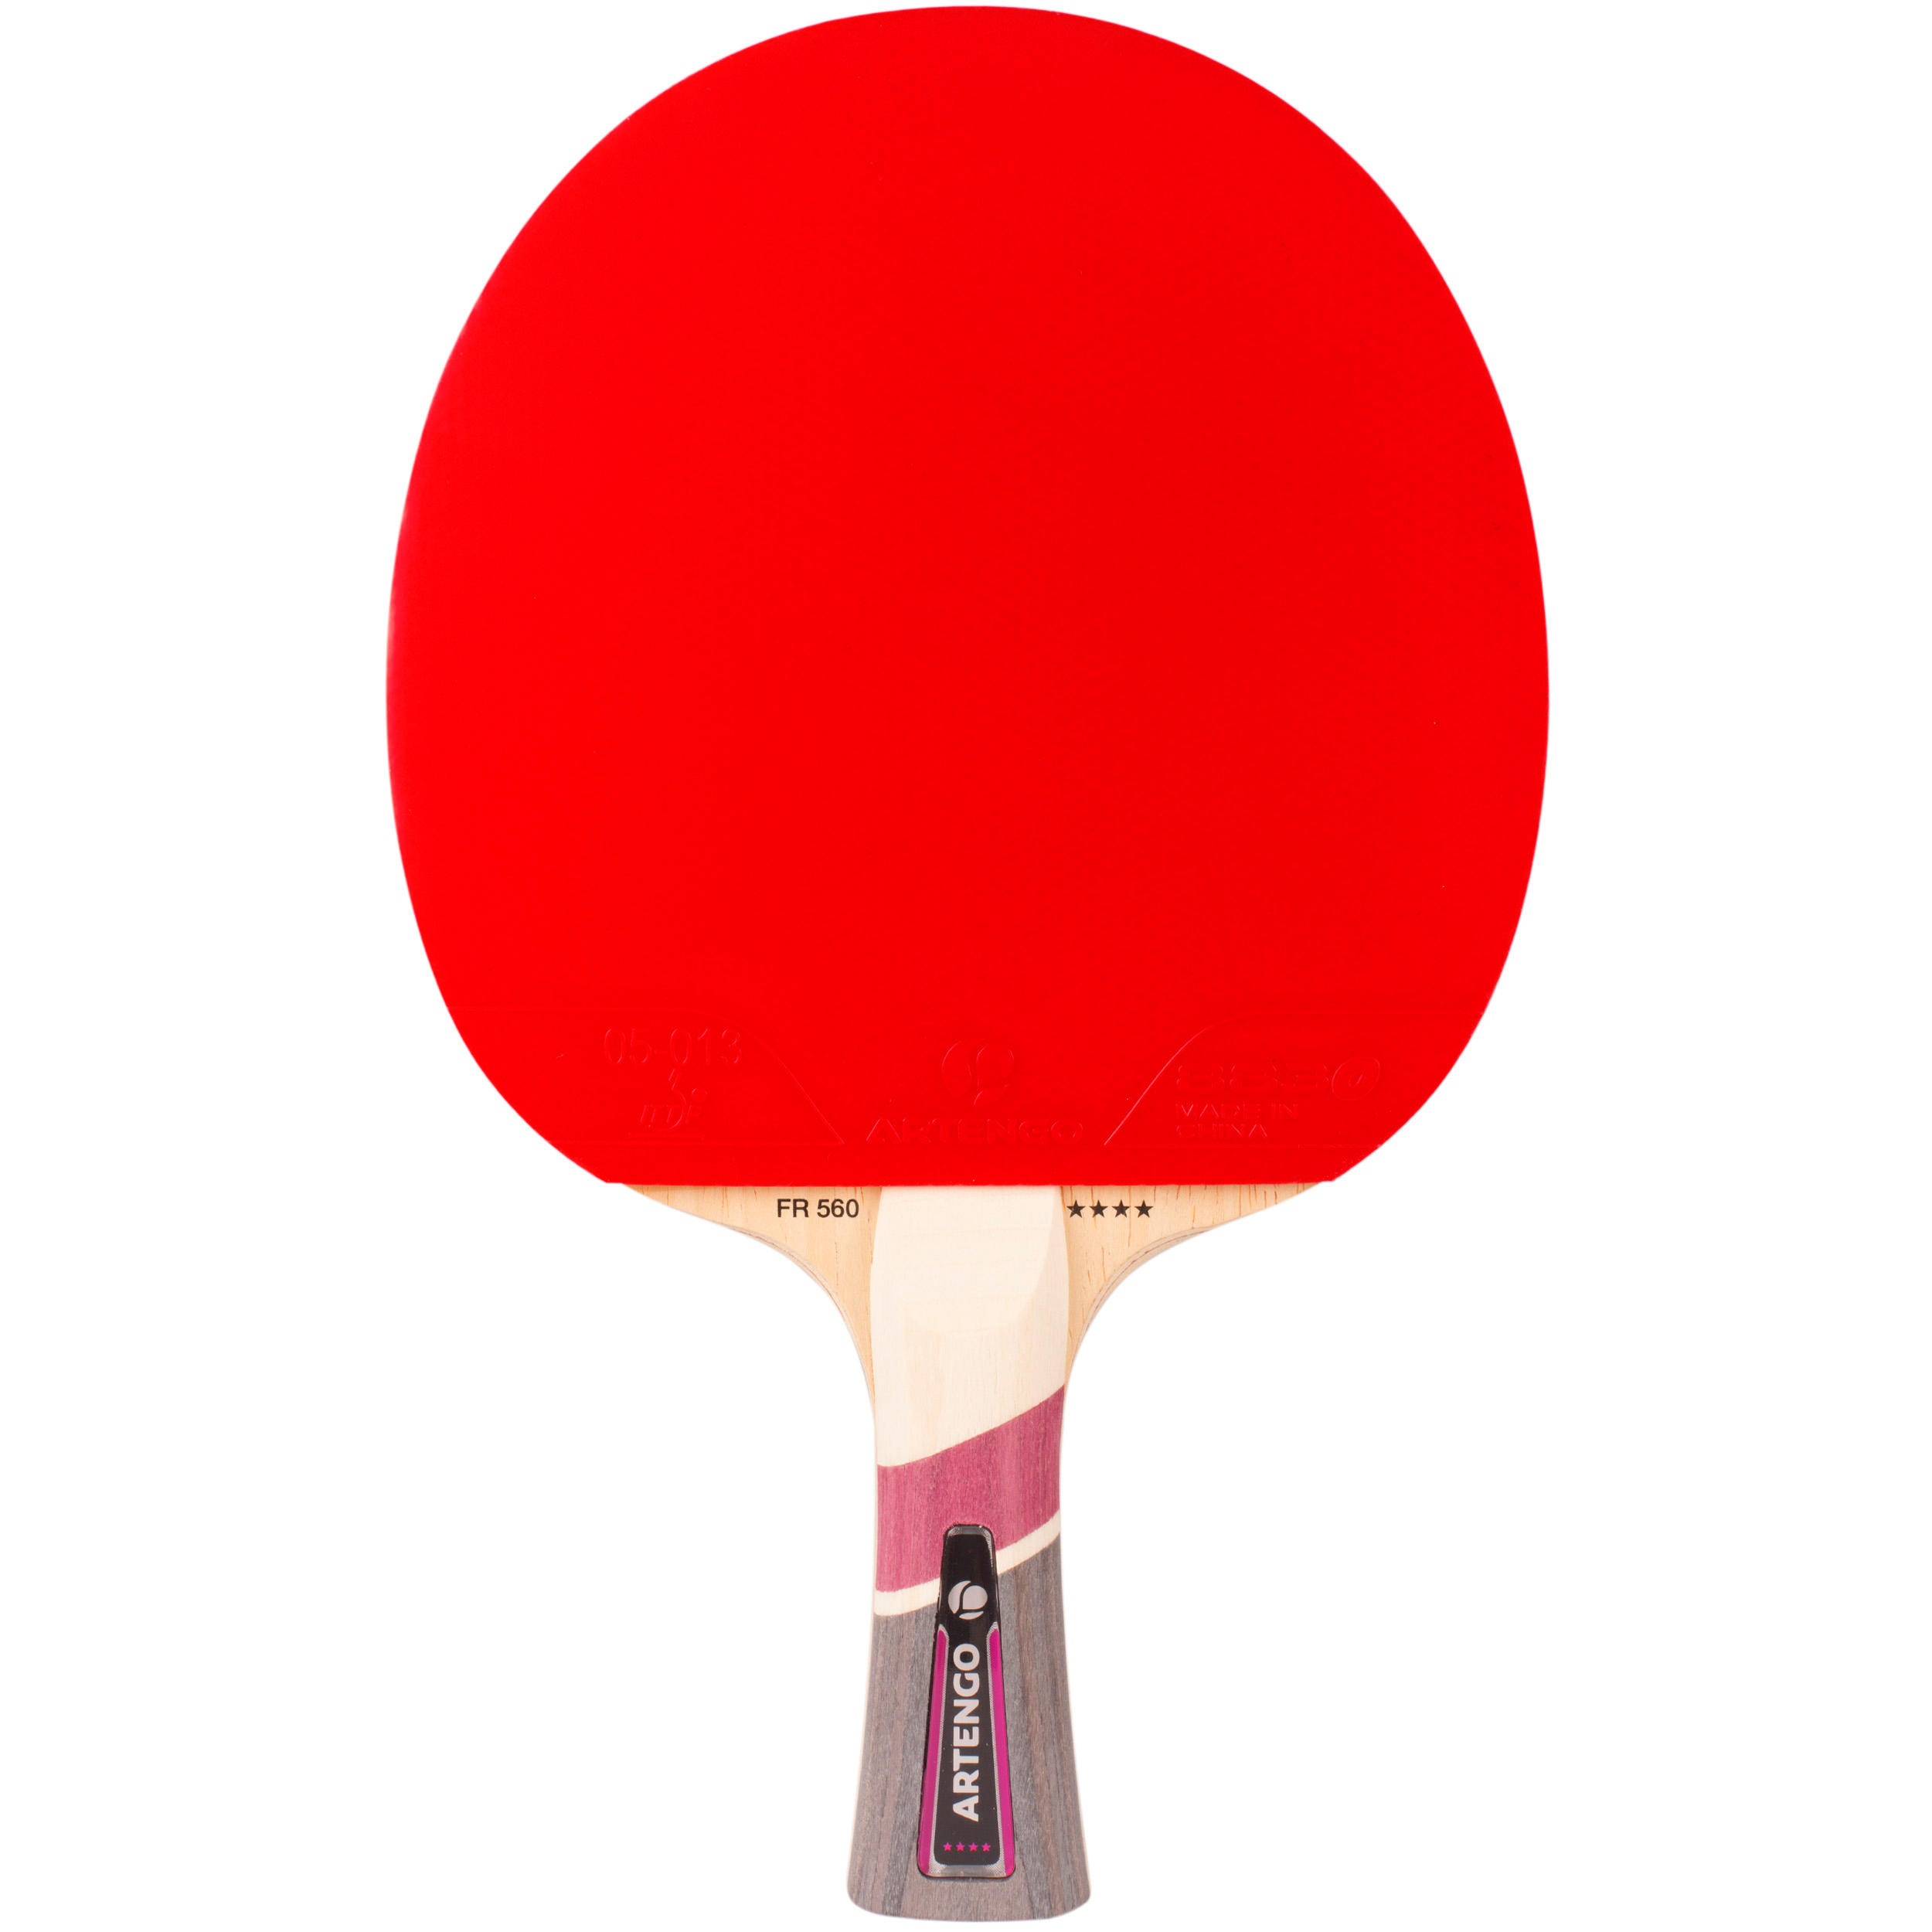 FR 560 4* Table Tennis Paddle